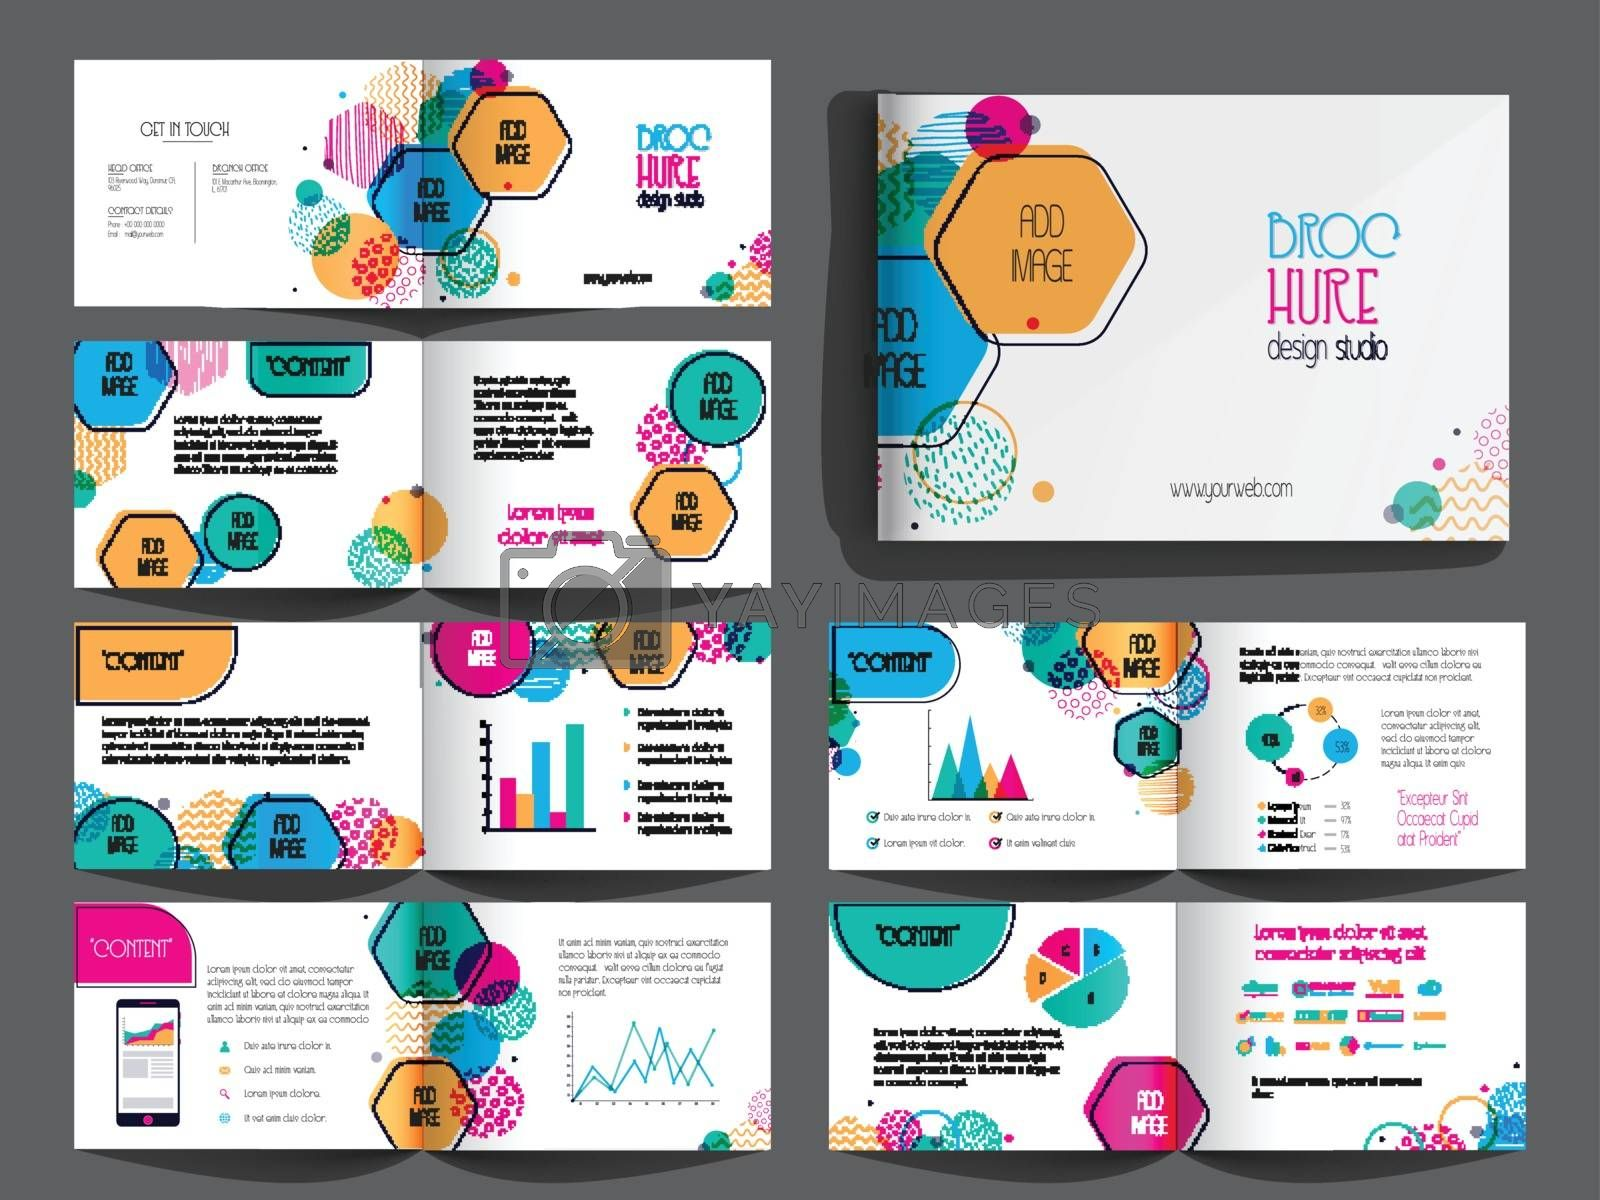 Professional Brochure, Leaflet design pack with infographic elements and space to add your images.